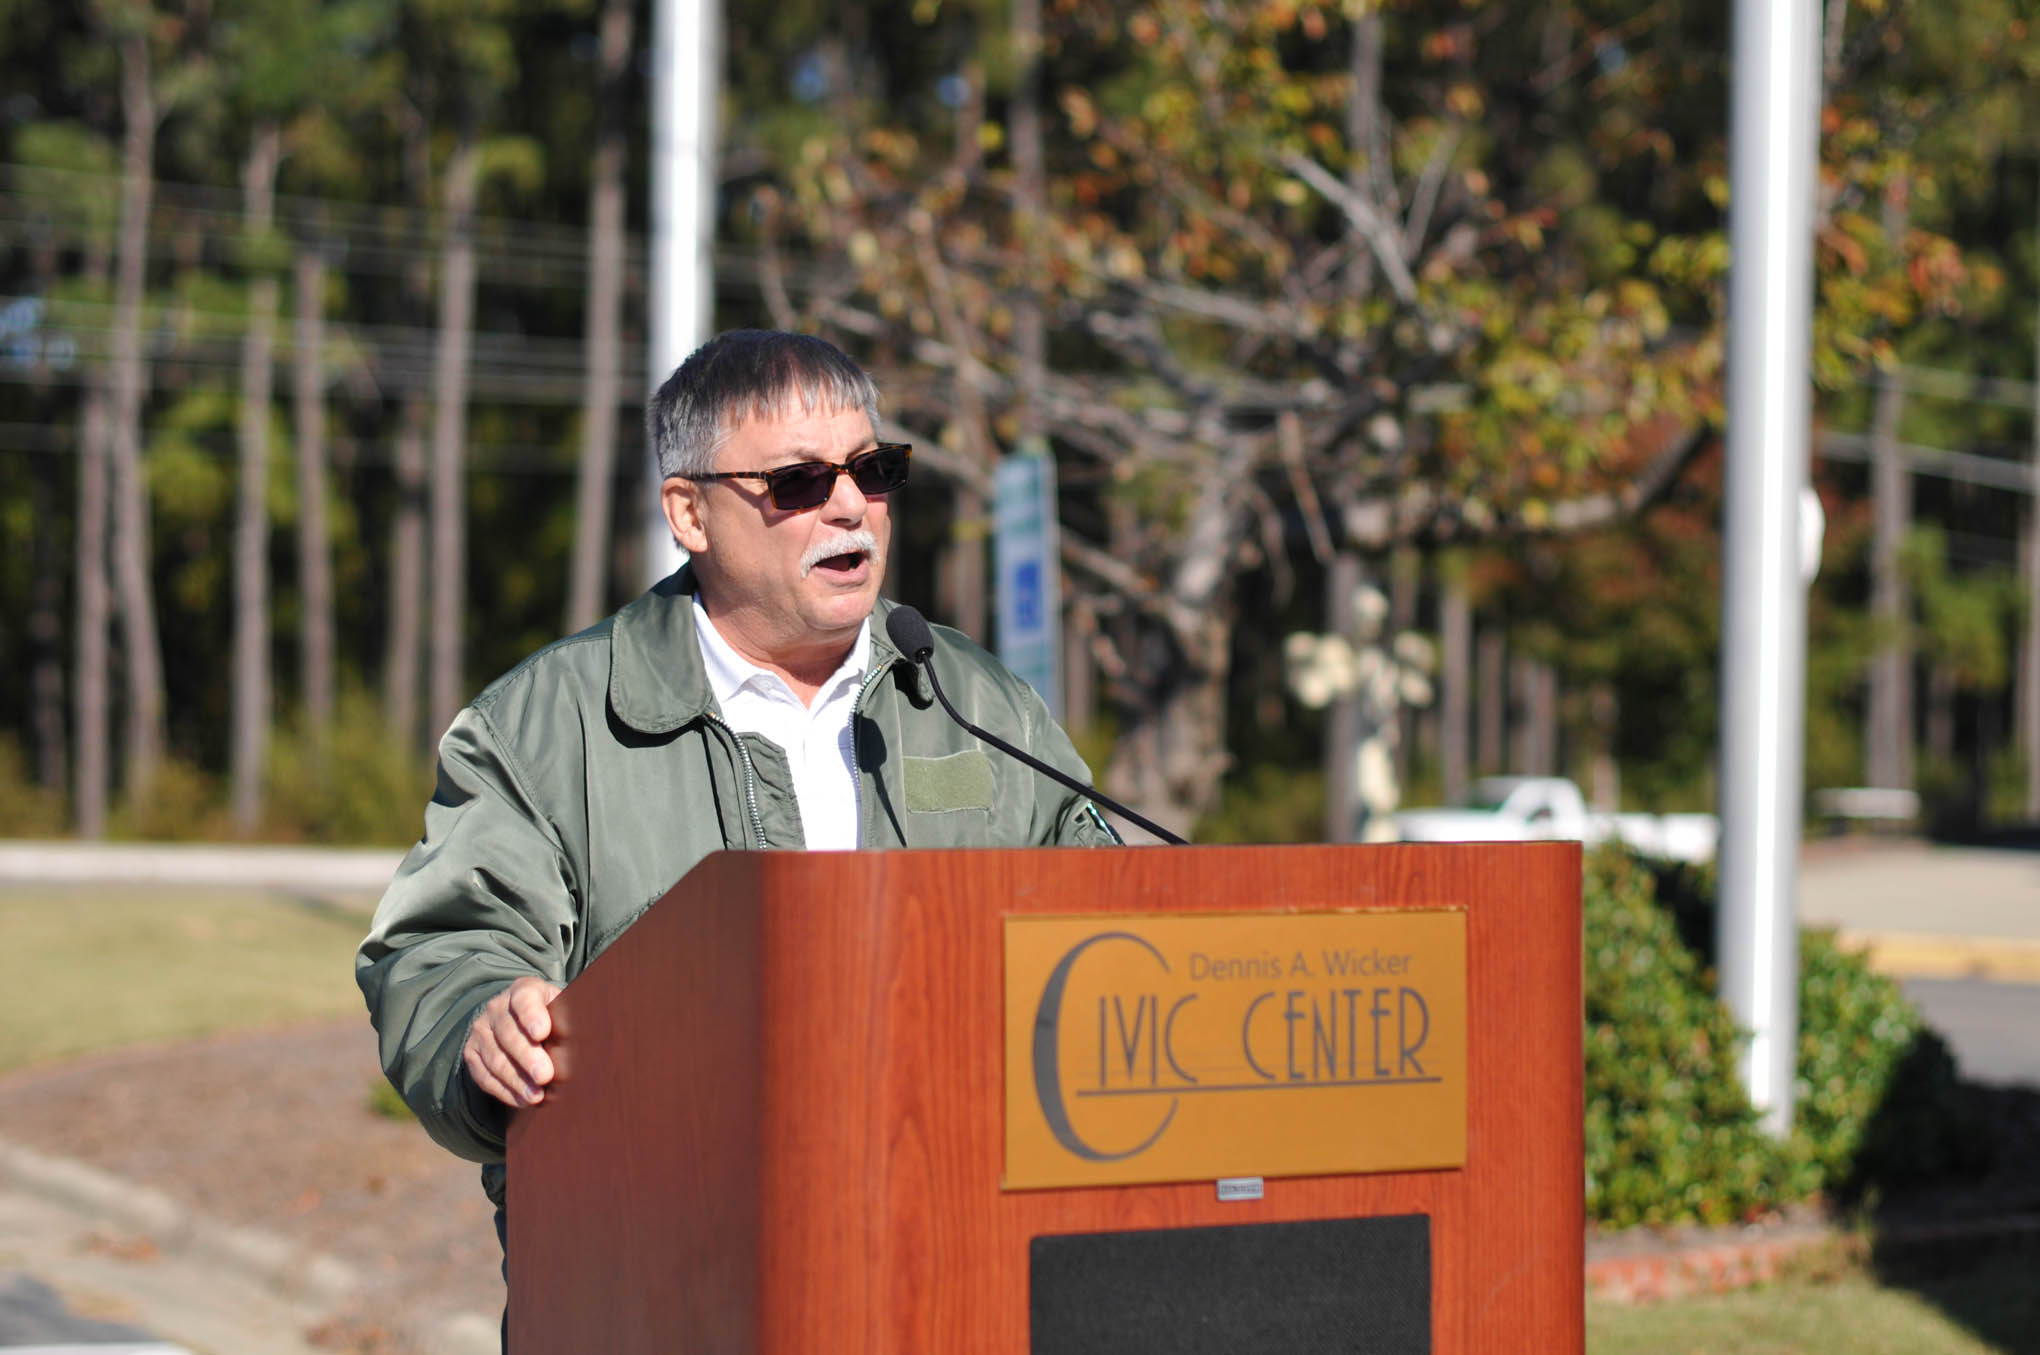 Click to enlarge,  Richard C. Biggs, MSgt., U.S. Air Force Retired, who currently serves as an instructor in Central Carolina Community College's Information Technology program, was Master of Ceremony at the Veterans Day observance on Thursday, Nov. 10, at the Dennis A. Wicker Civic Center.